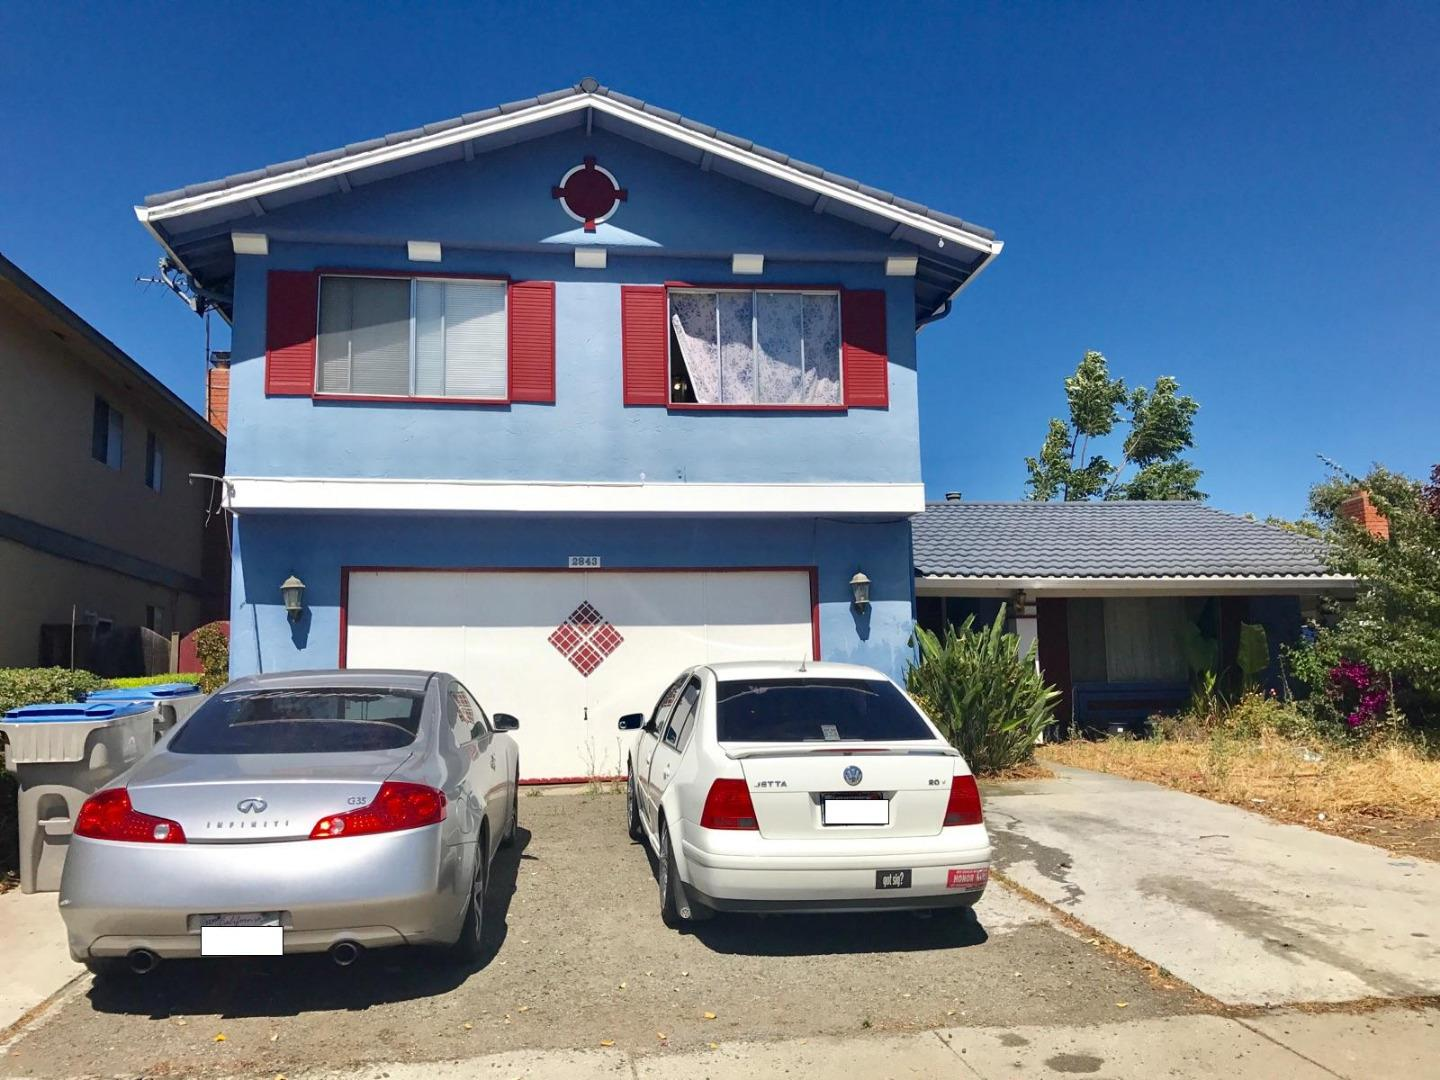 Additional photo for property listing at 2843 Mayglen Way  San Jose, カリフォルニア 95133 アメリカ合衆国